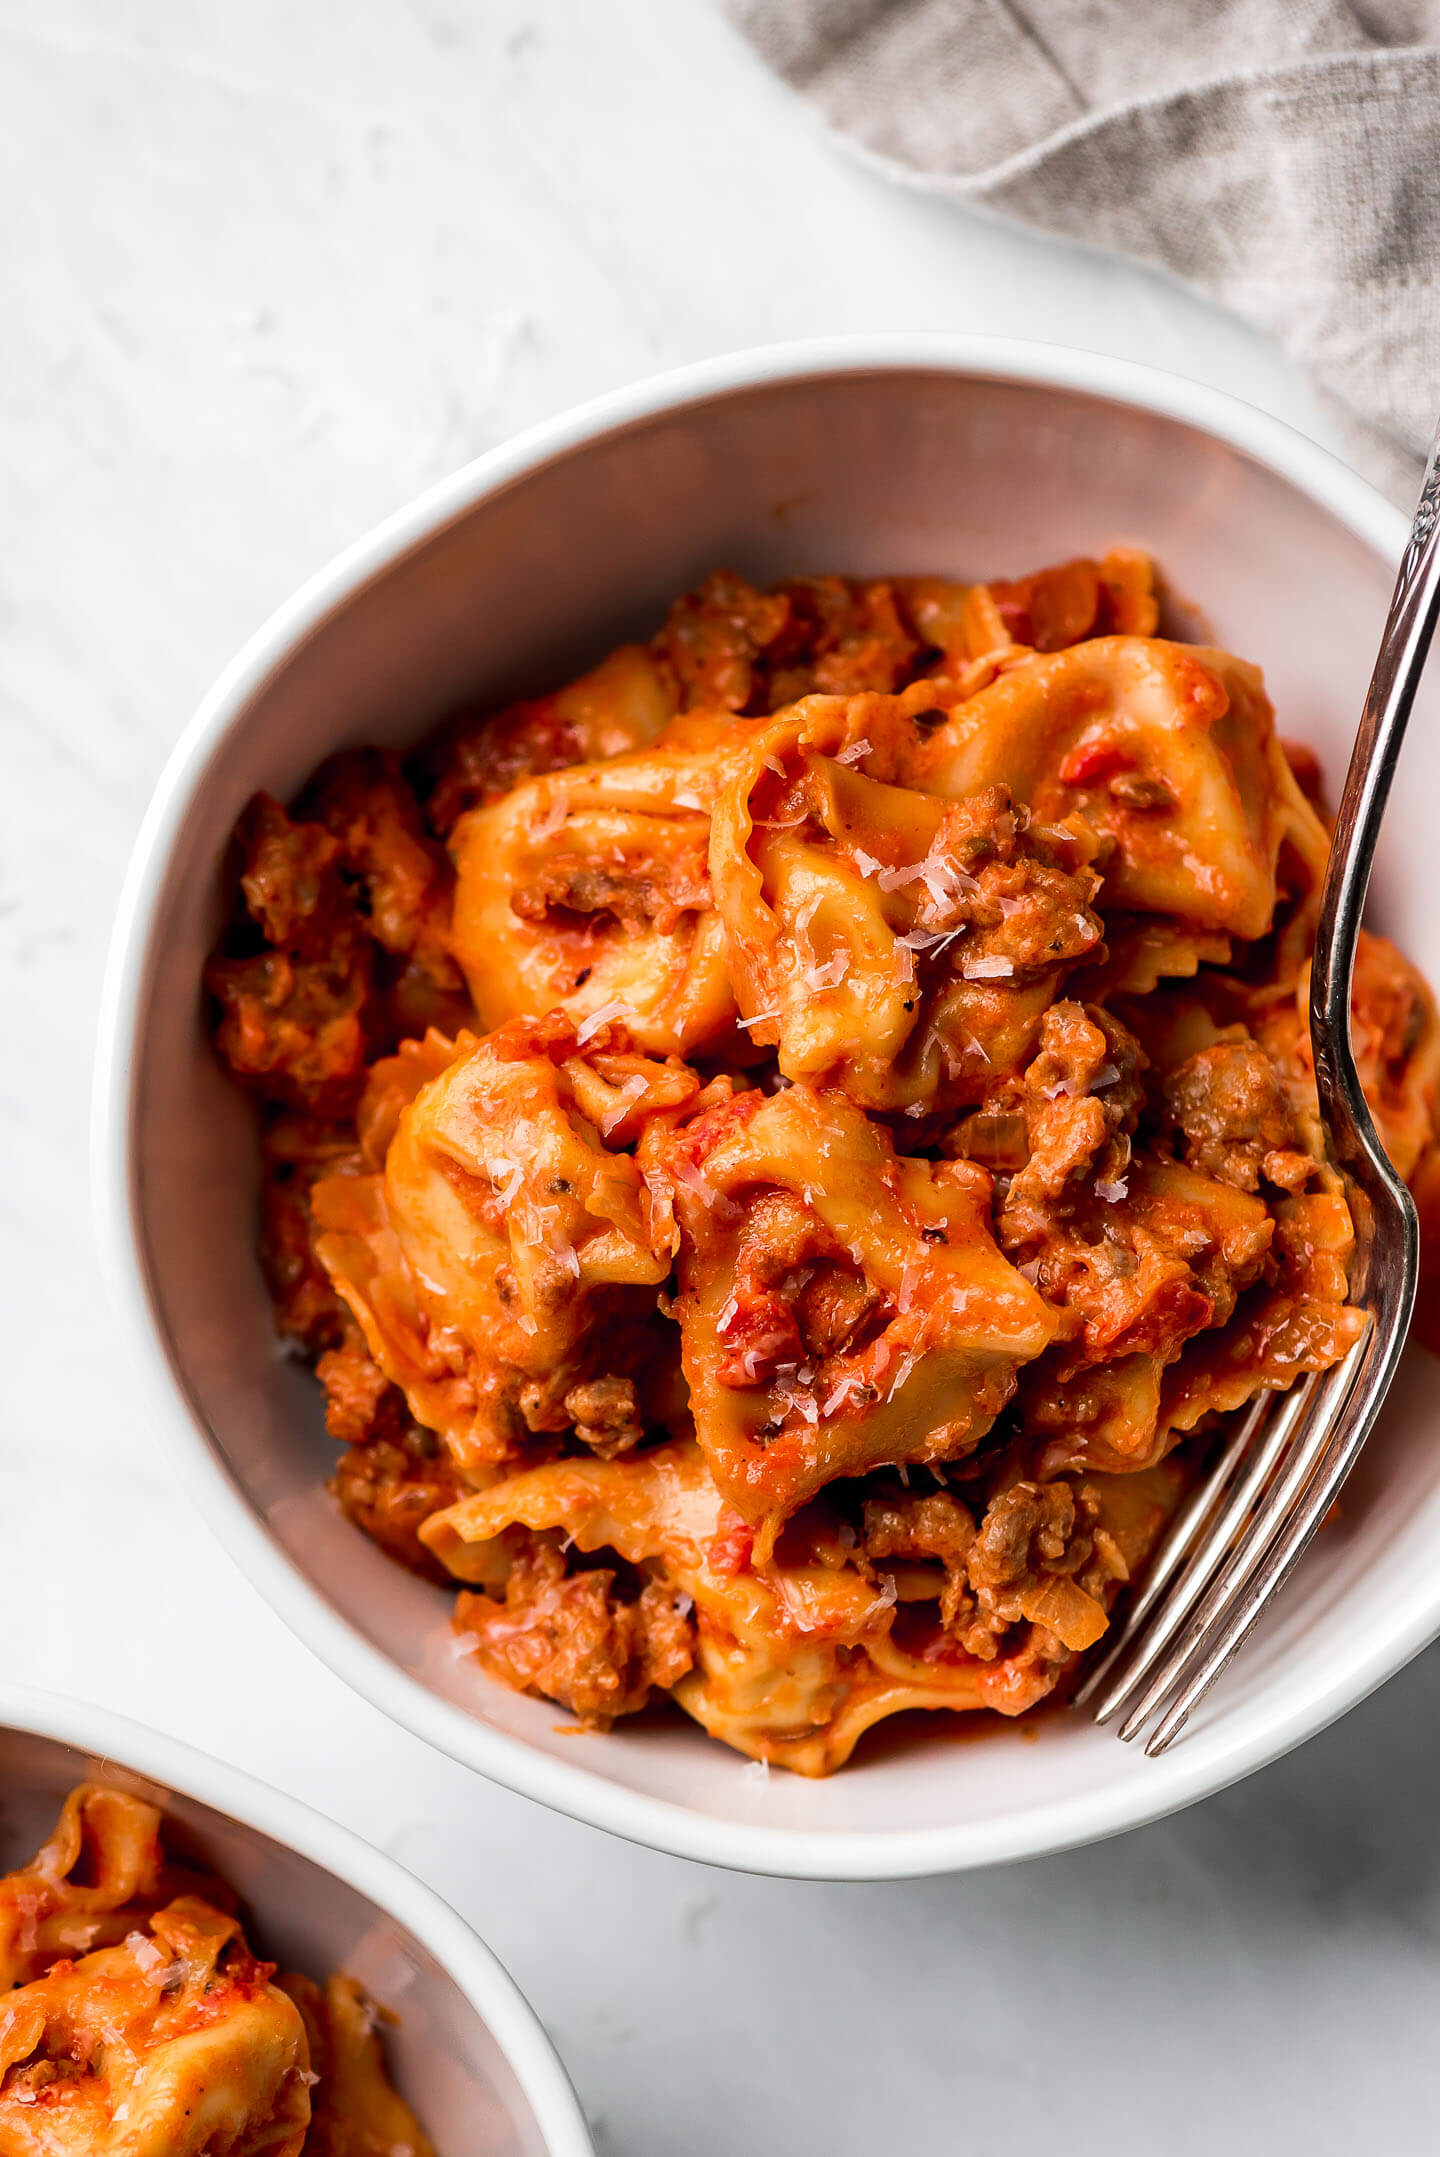 A bowl of tortellini in creamy sausage red sauce and a fork in the side